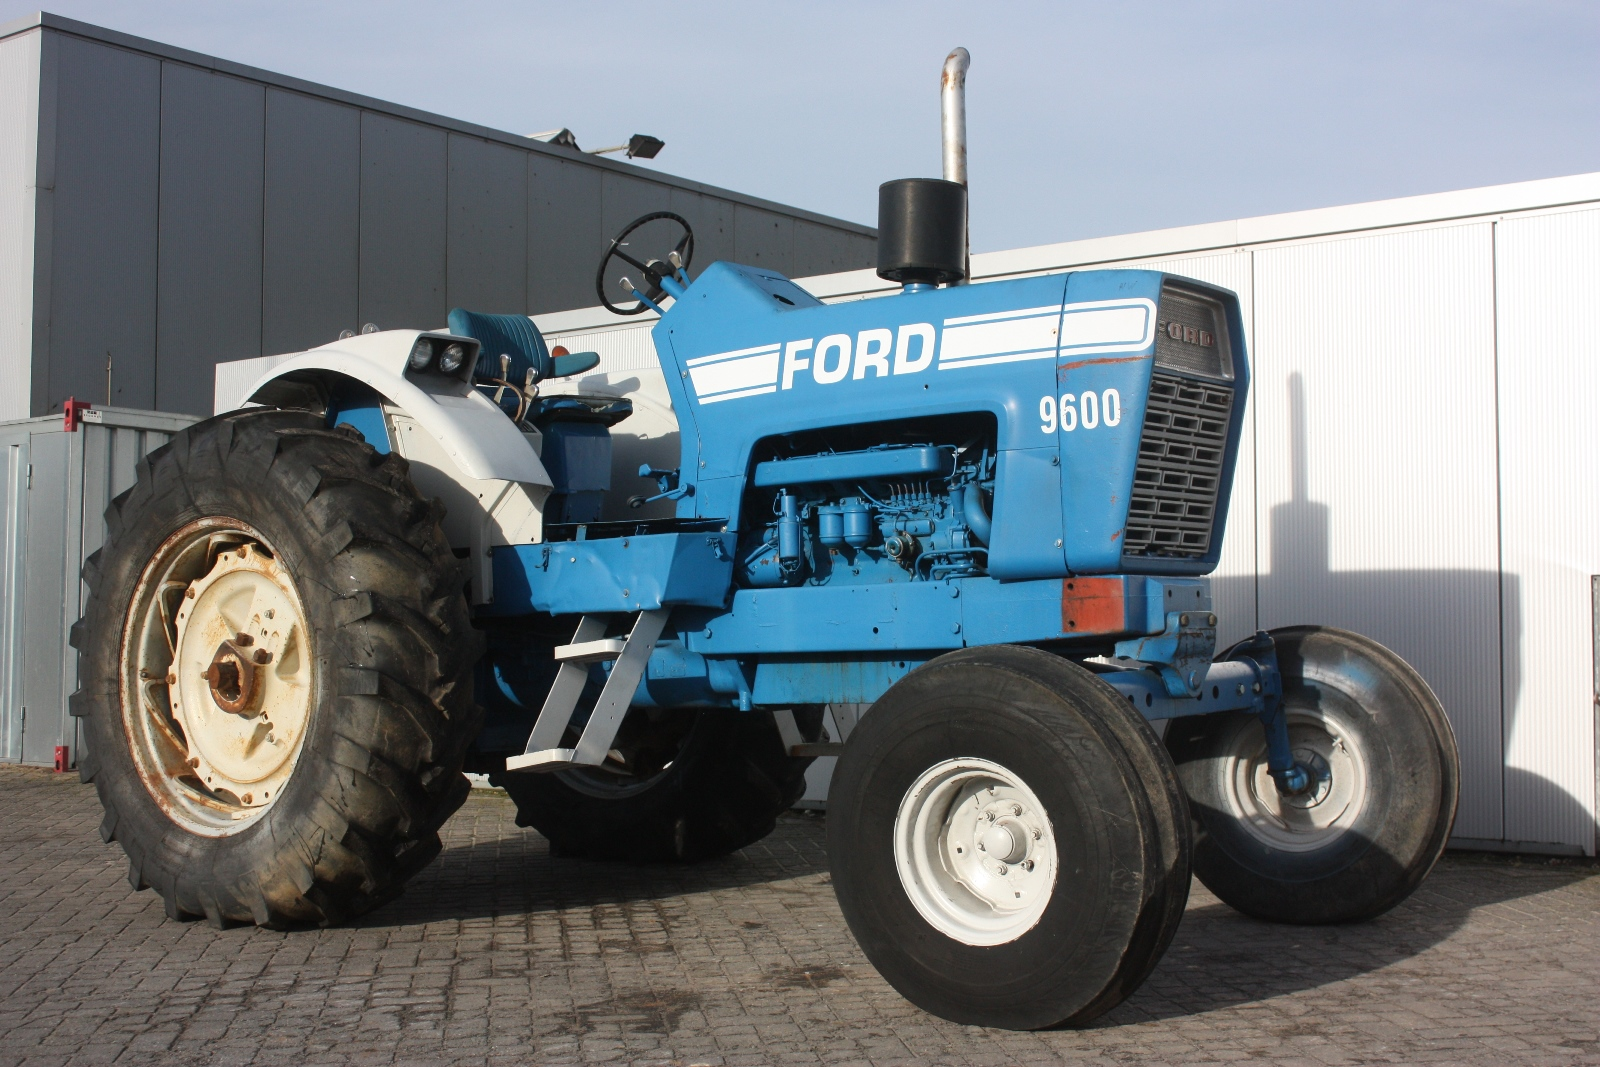 Ford 9600 Tractor : Ford  agricultural tractor van dijk heavy equipment